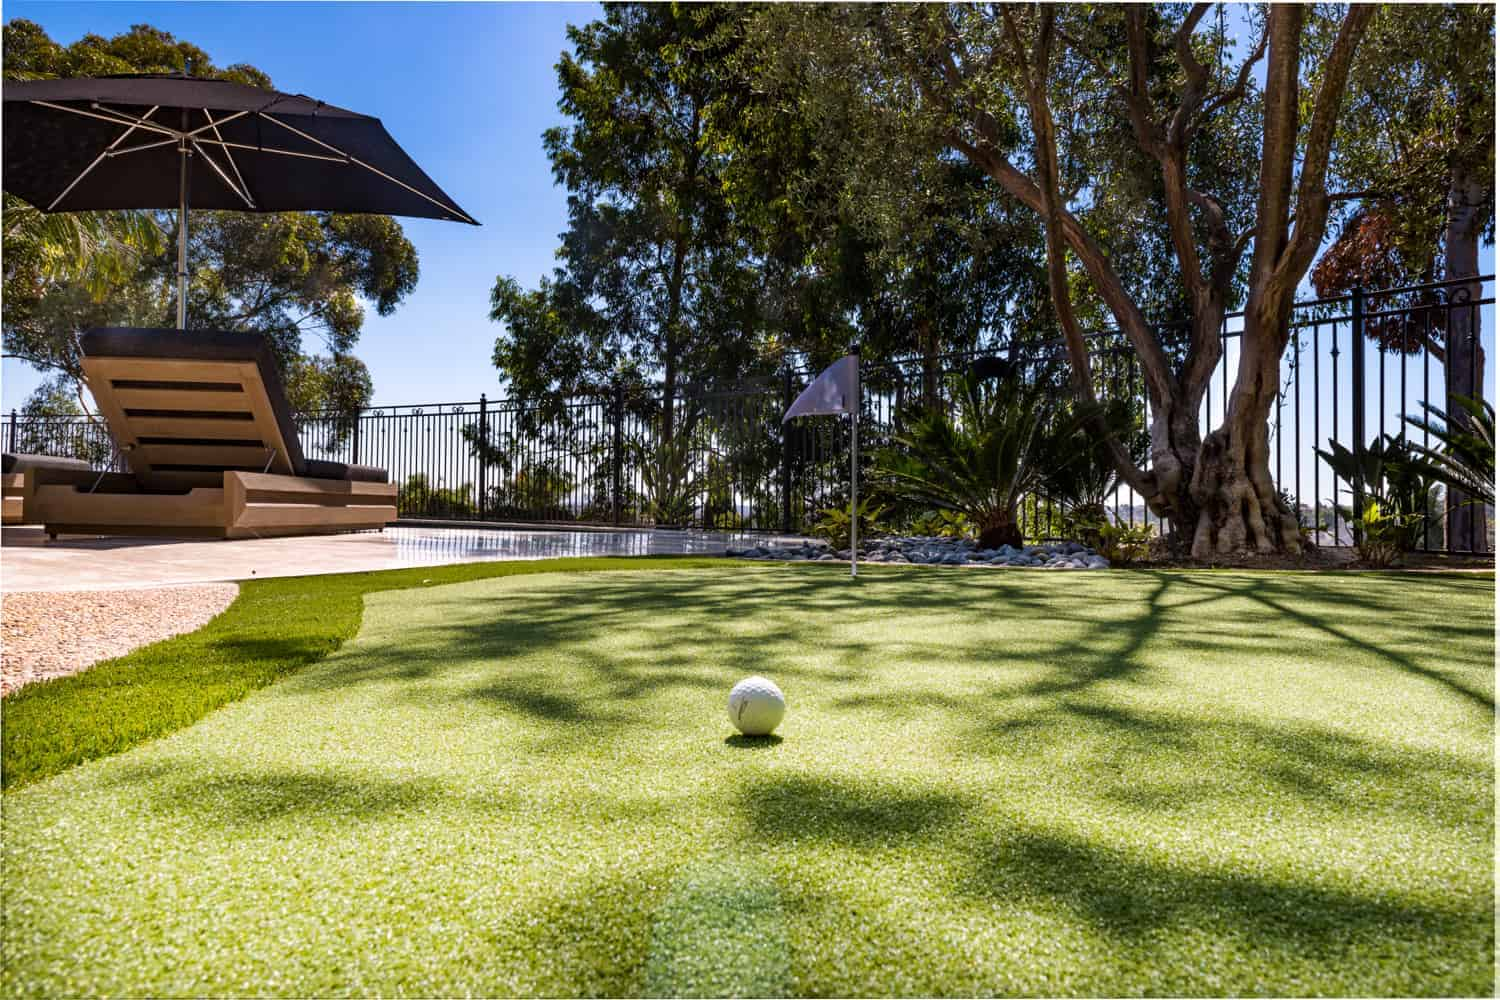 Residential Artificial Grass Installation Synthetic